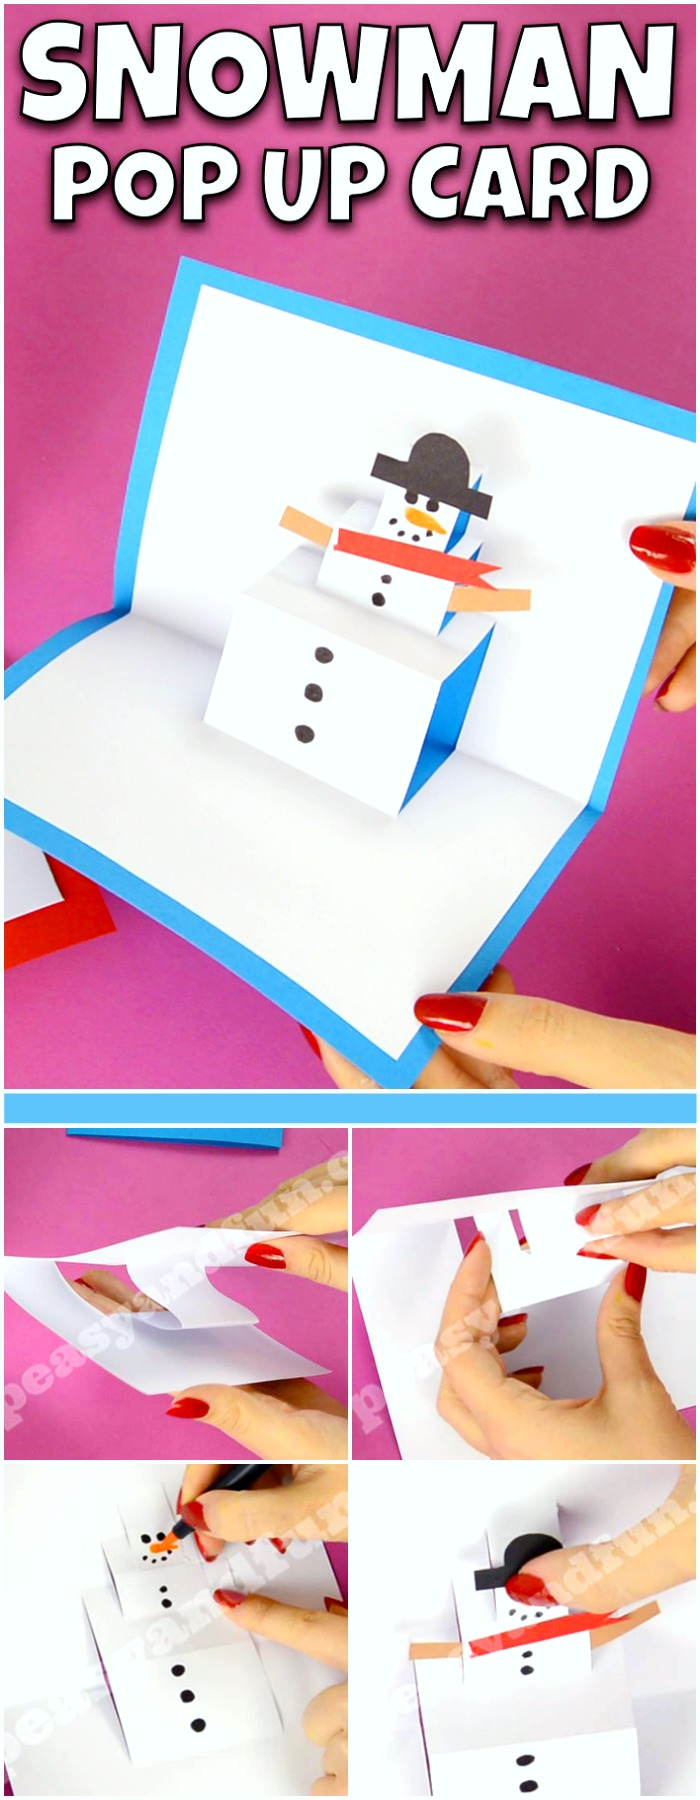 Cute DIY Snowman Pop Up Card. Fun DIY Christmas craft idea for kids to make.